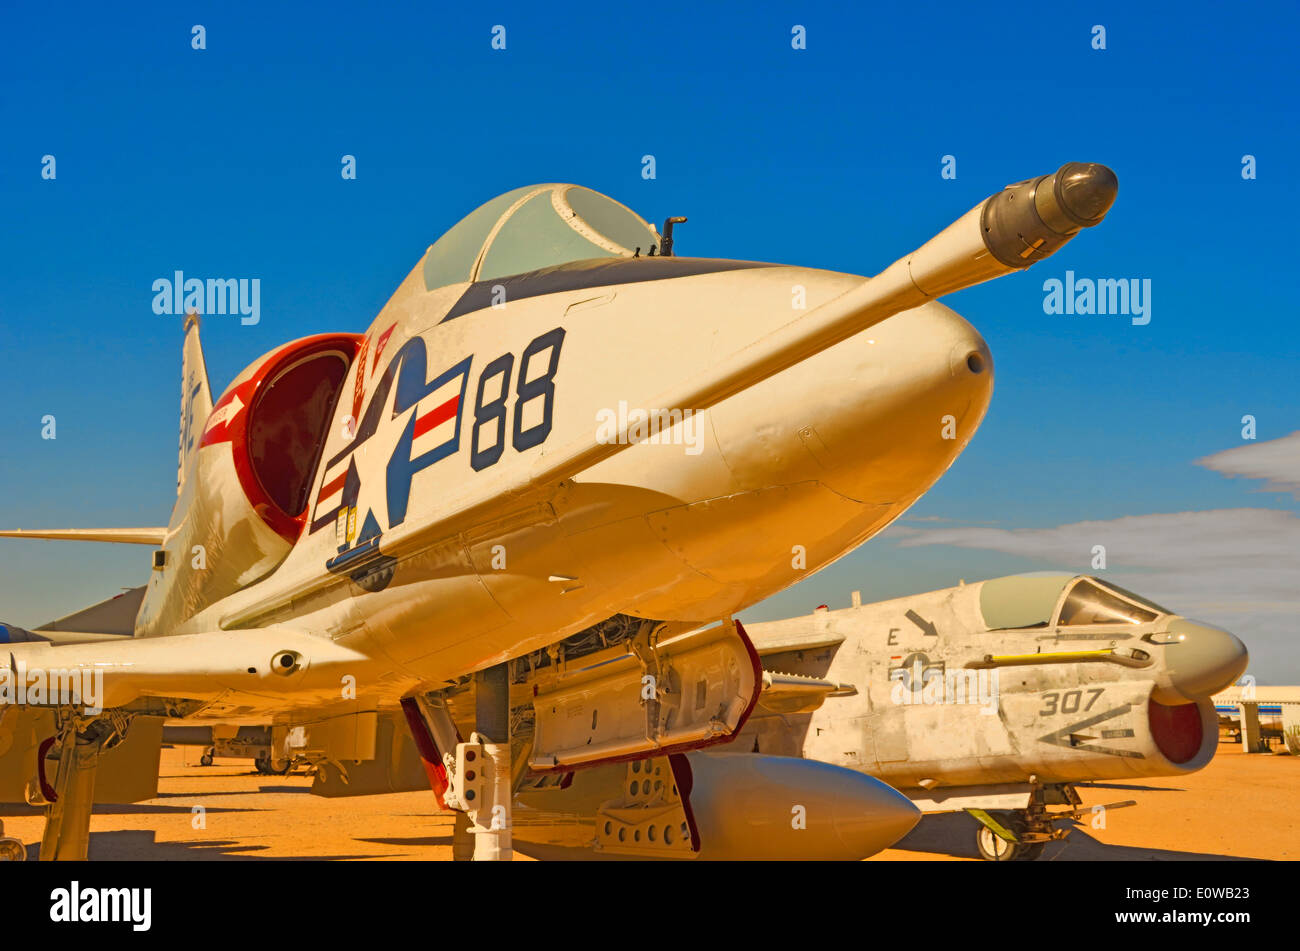 Douglas A-4D Skyhawk attack bomber at Pima Air and Space Museum in Tucson, Arizona, USA Stock Photo